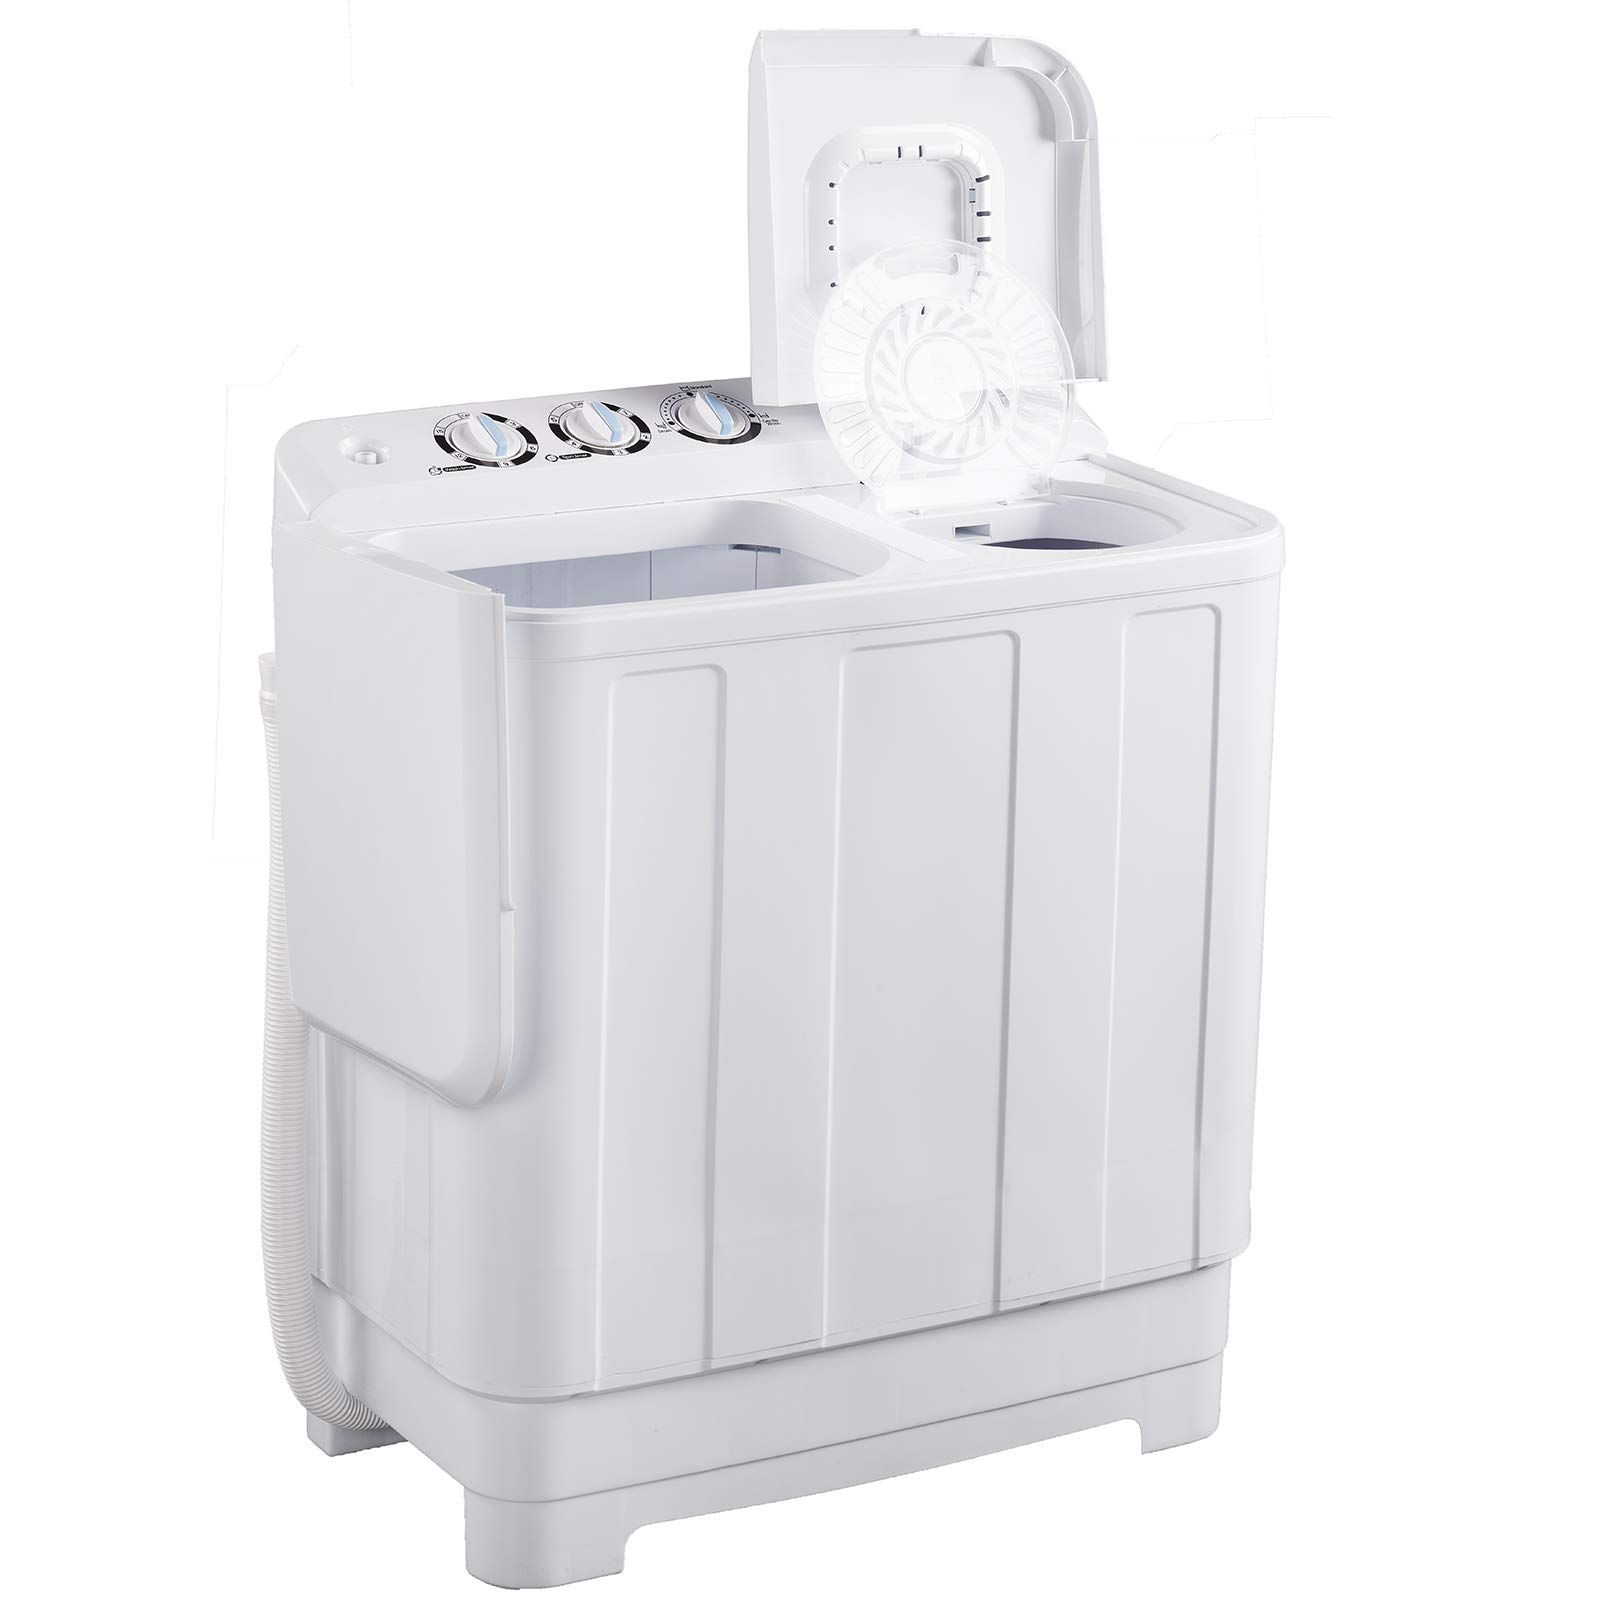 Frifer Portable Twin Tub Washing Machine, Compact Mini Washer and Spin Dryer Combo For Camping, Apartments, Dorms, College Rooms, RVs and more (25LB/white)